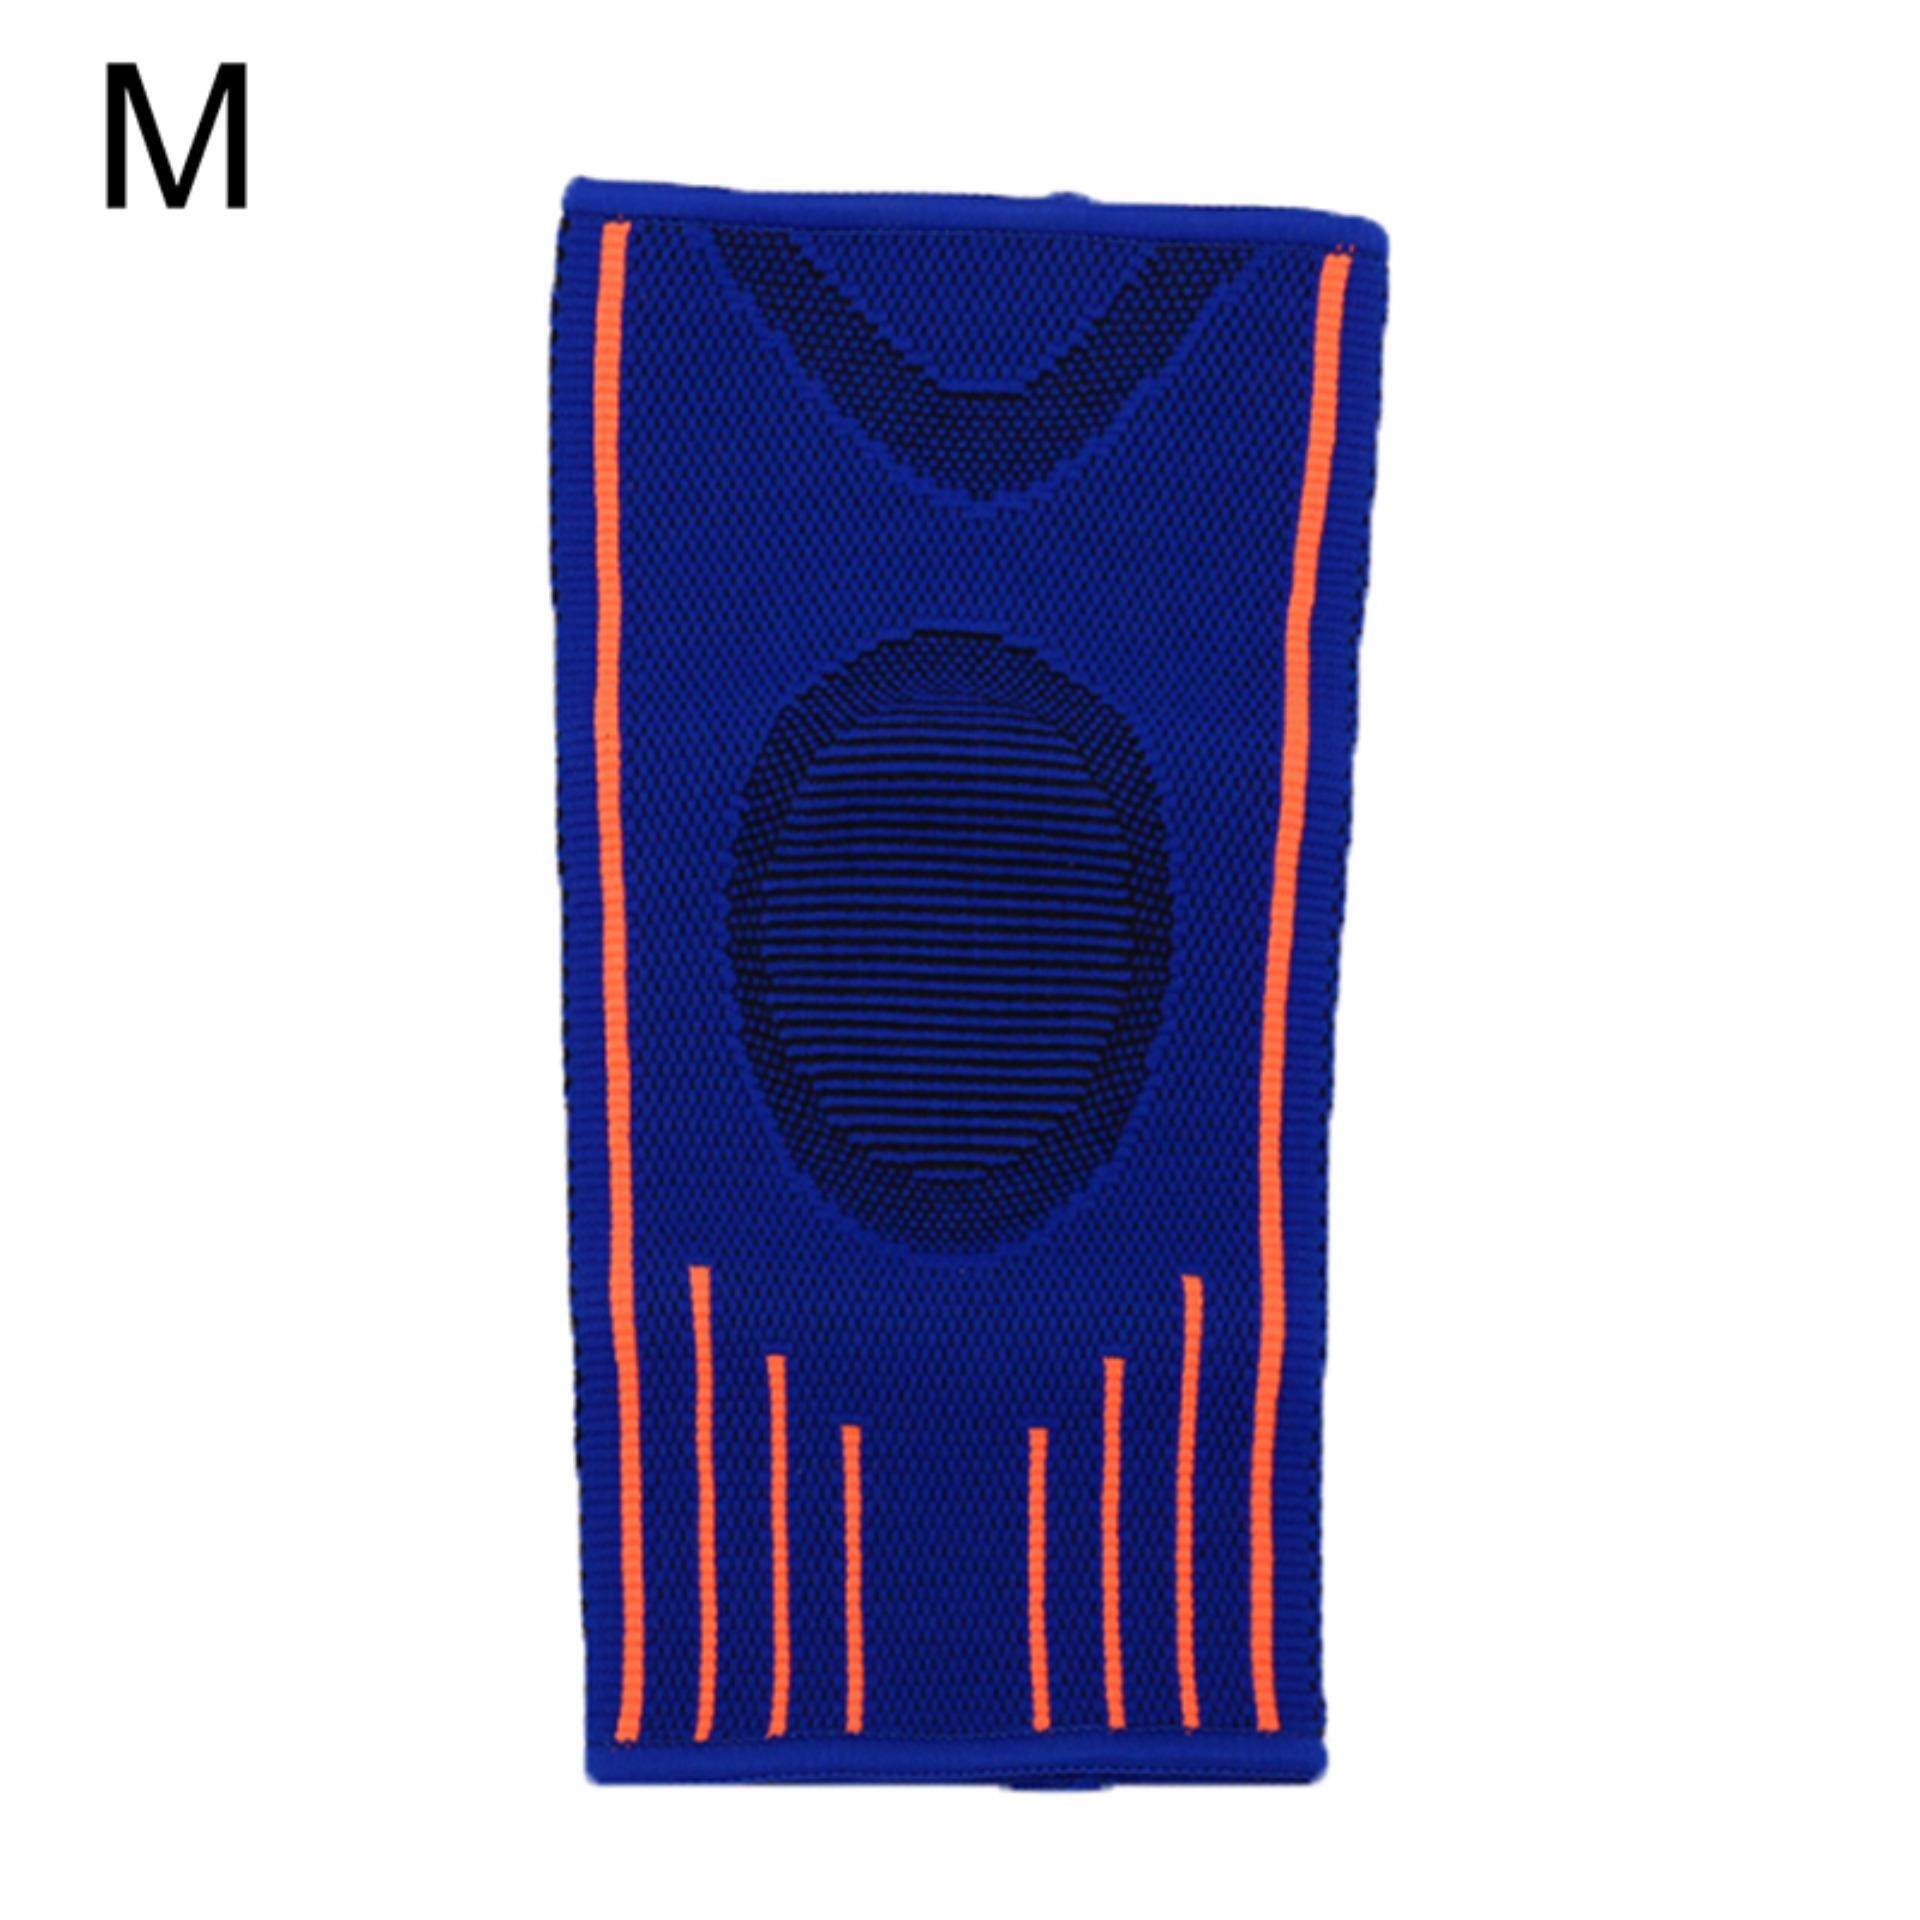 Nylon elbow brace sleeve elbow pads for sports absorb sweat elbow protection SizeM:23cm x 13.5cm x 11.5cm - intl